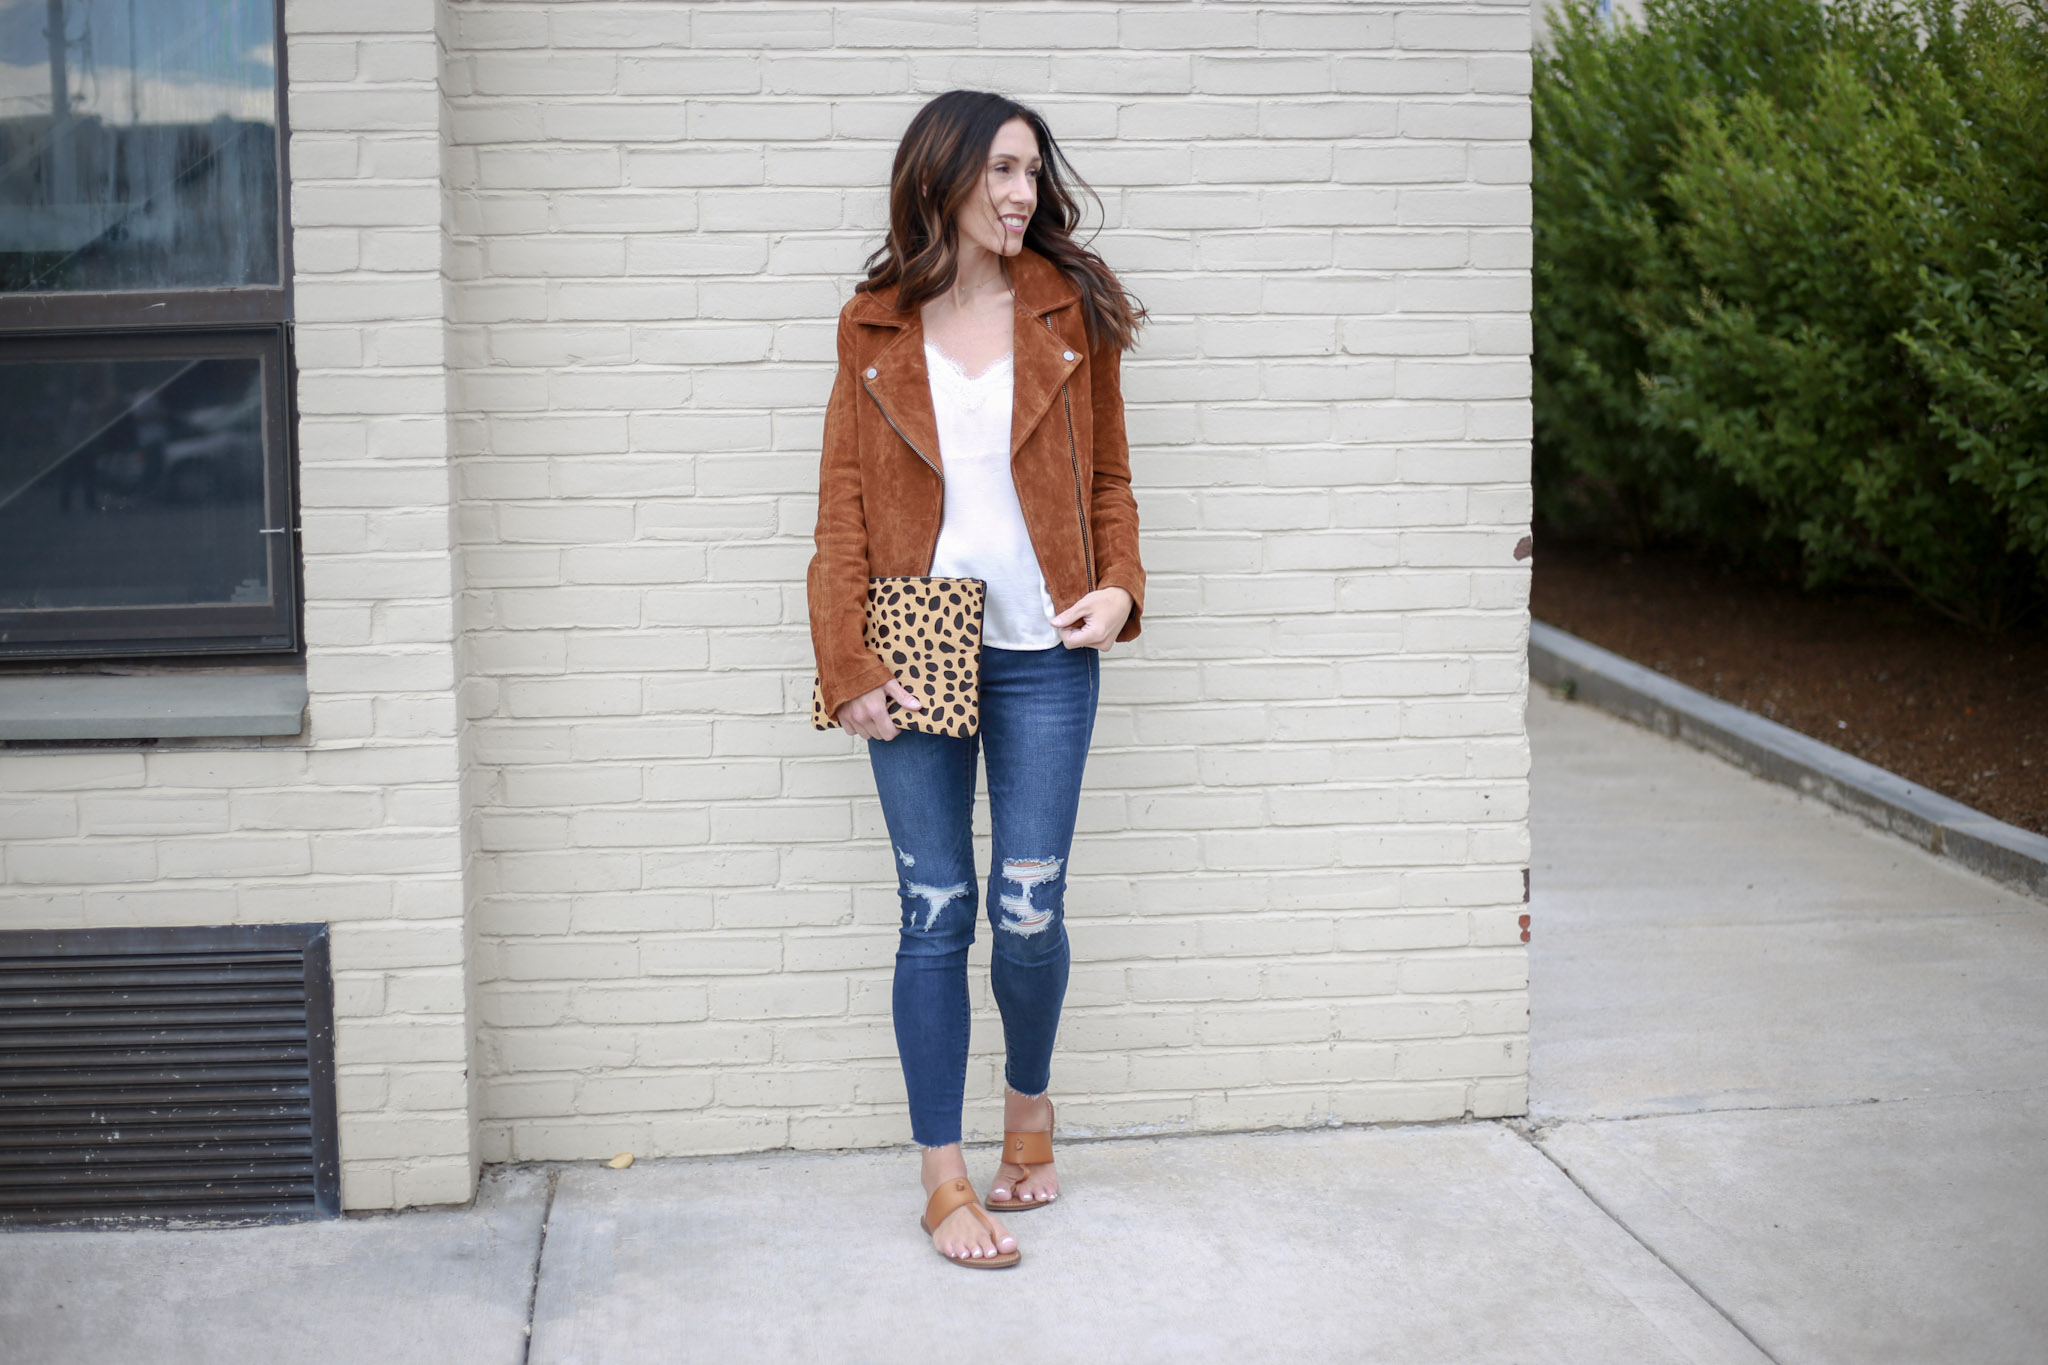 capsule wardrobe series; the moto jacket